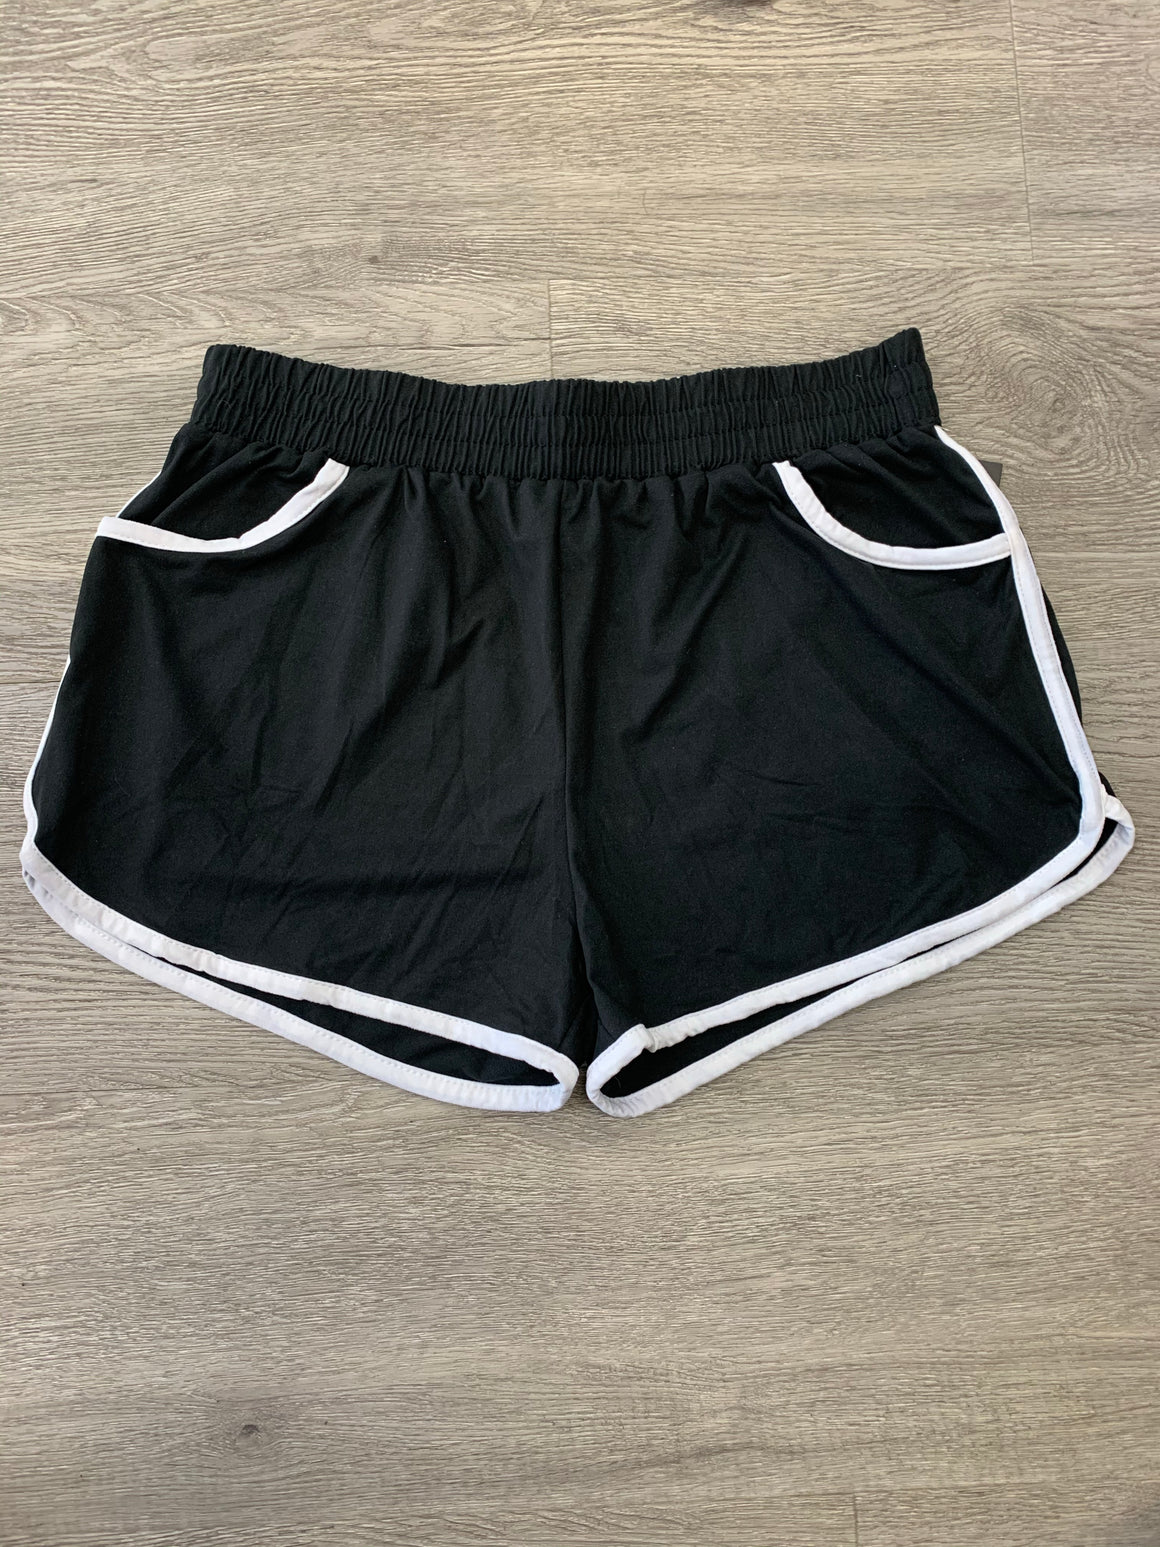 """Cozy Comfy"" Shorts (Black)"